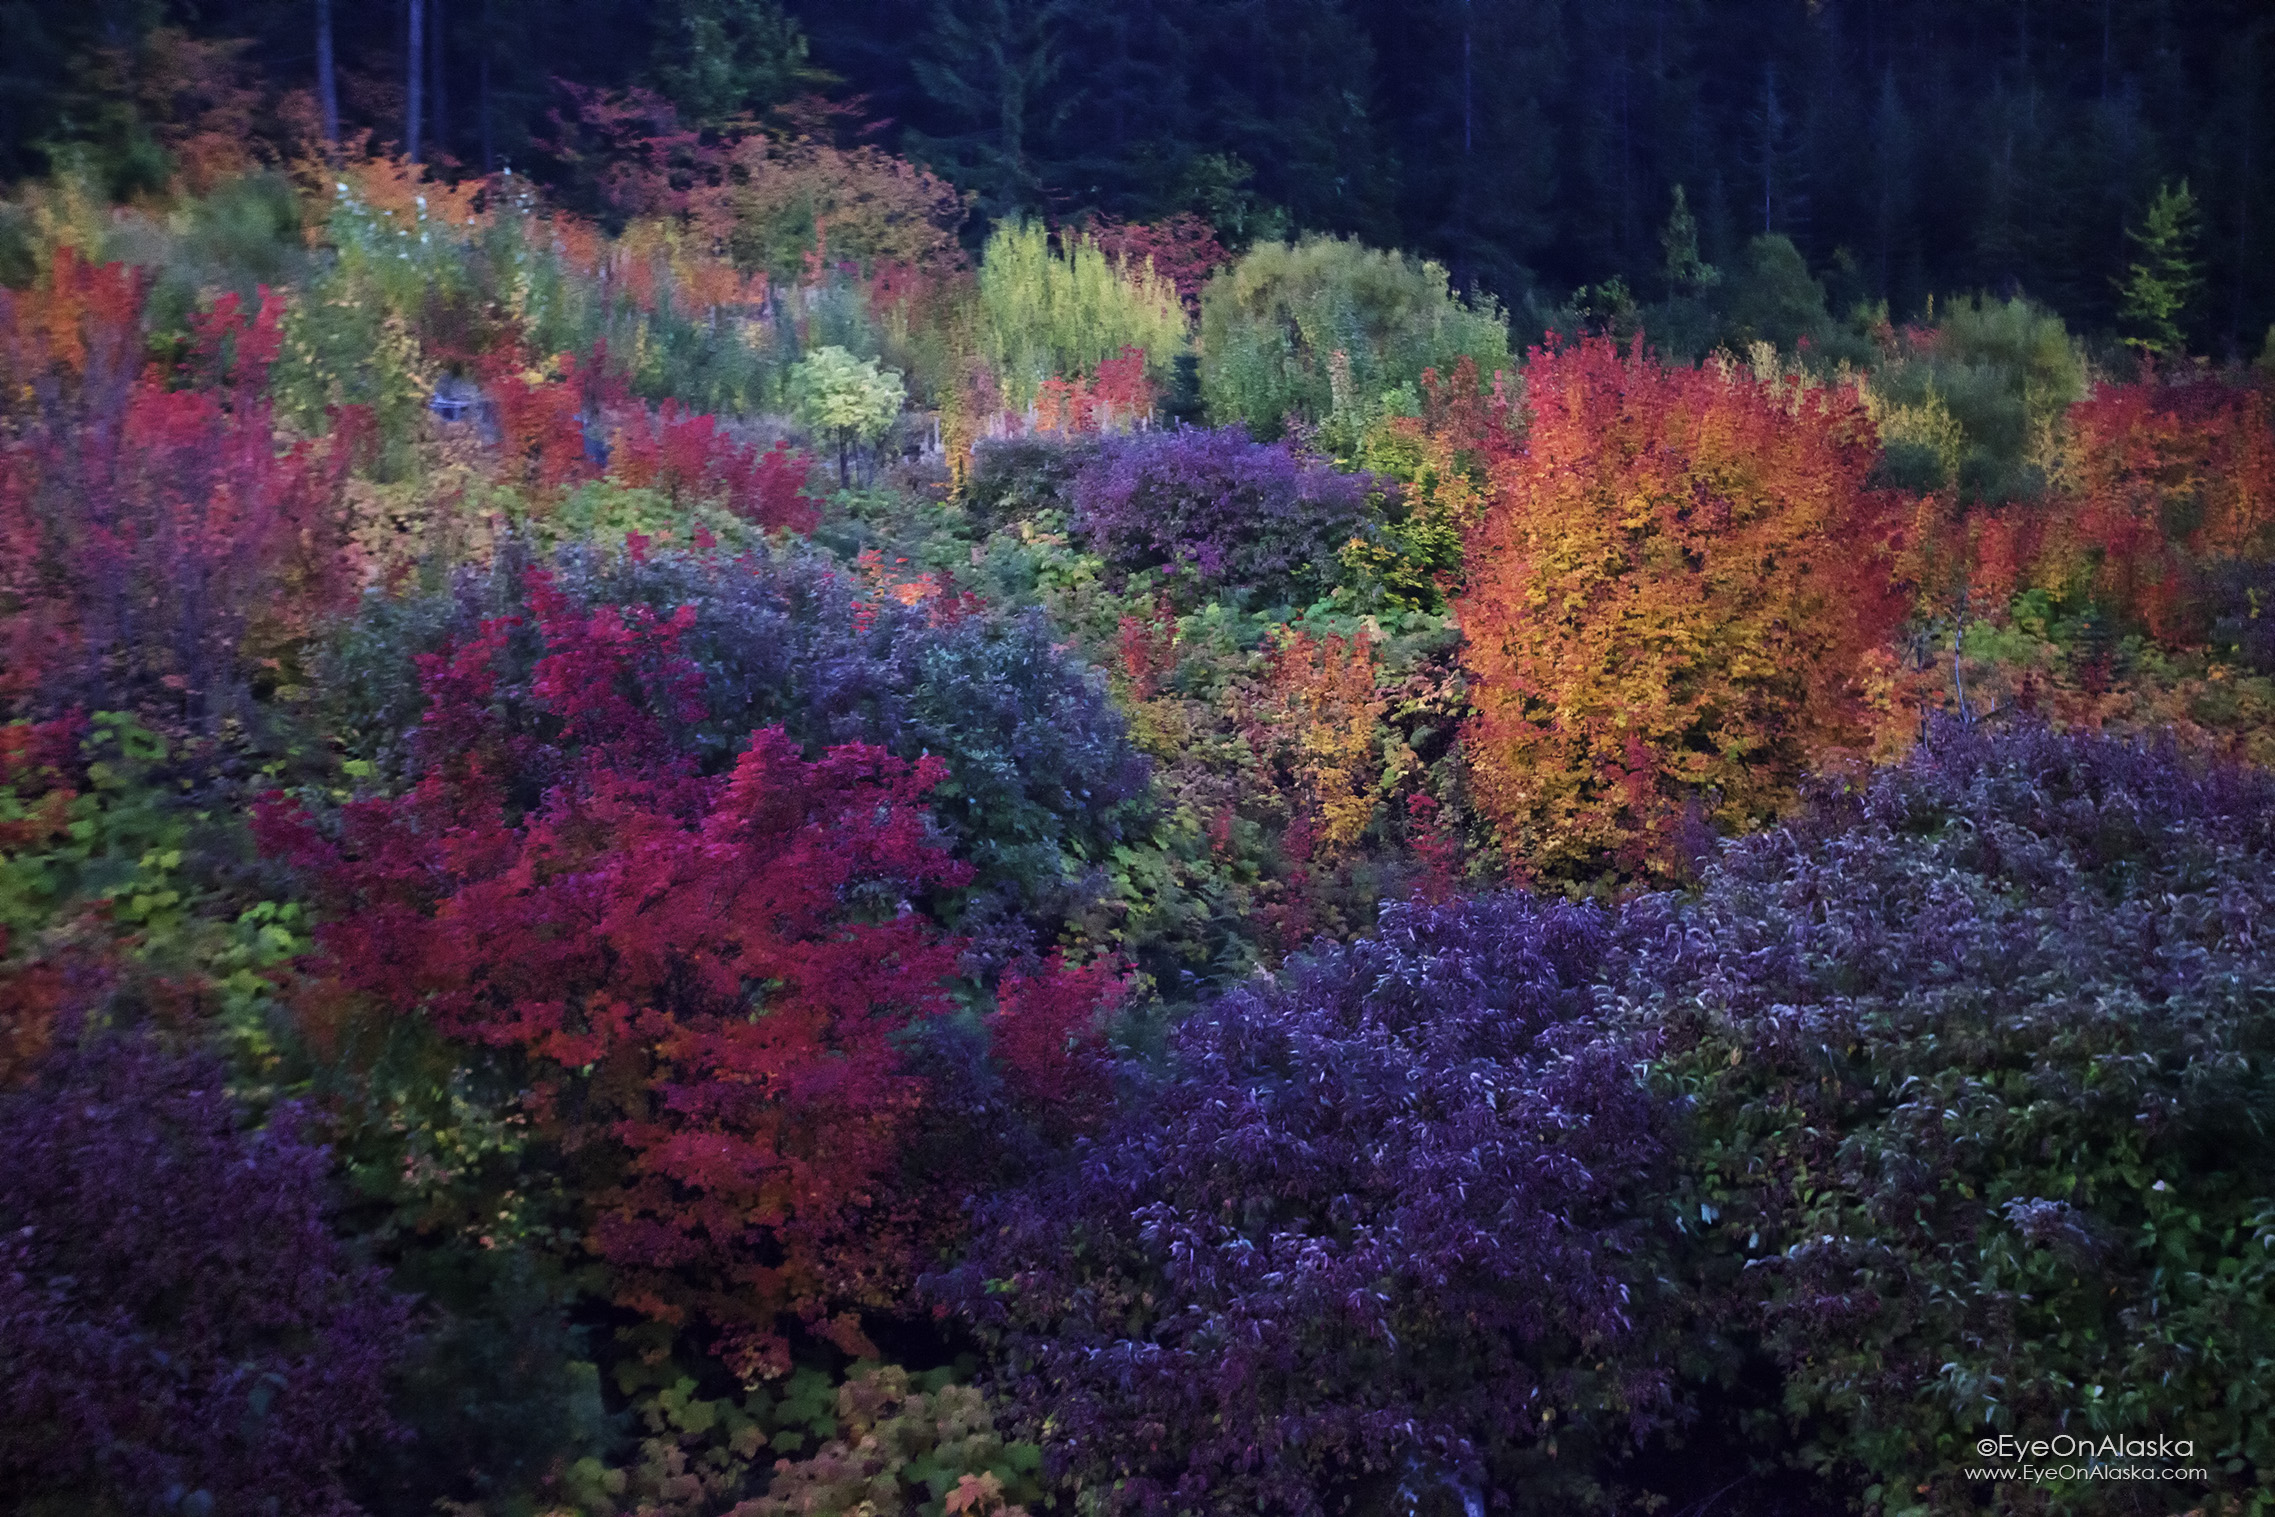 A last intense burst of early morning color somewhere in Western Washington state.